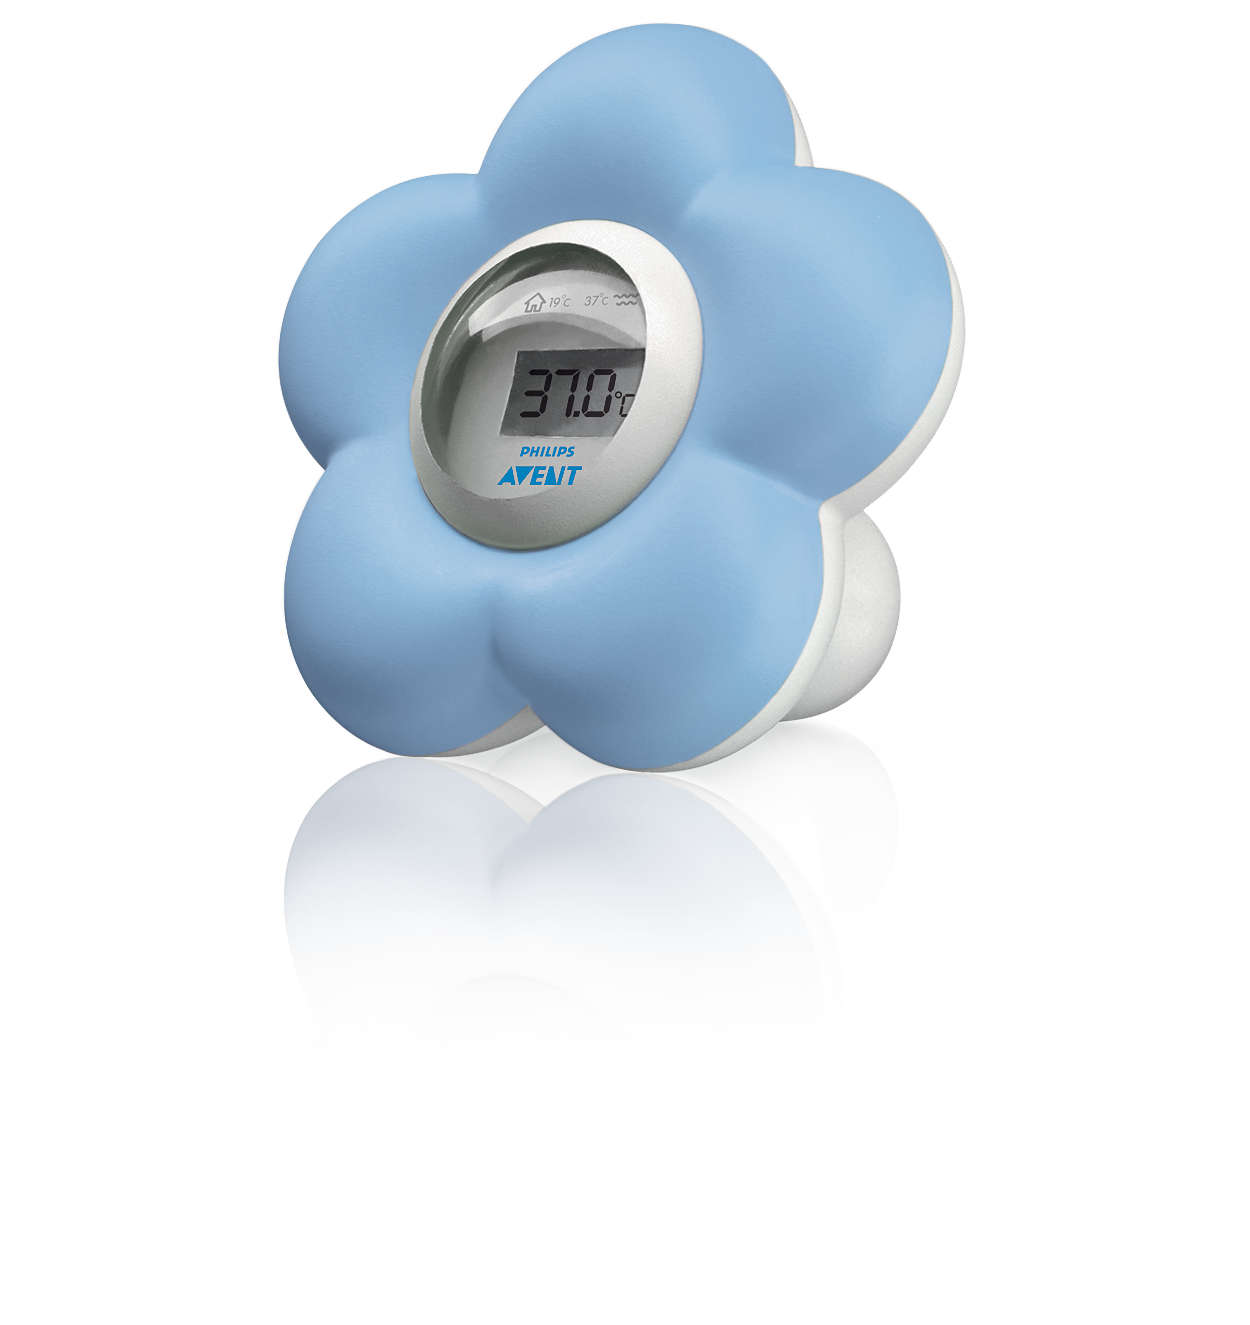 Baby Bath and Room Thermometer SCH550/20 | Avent